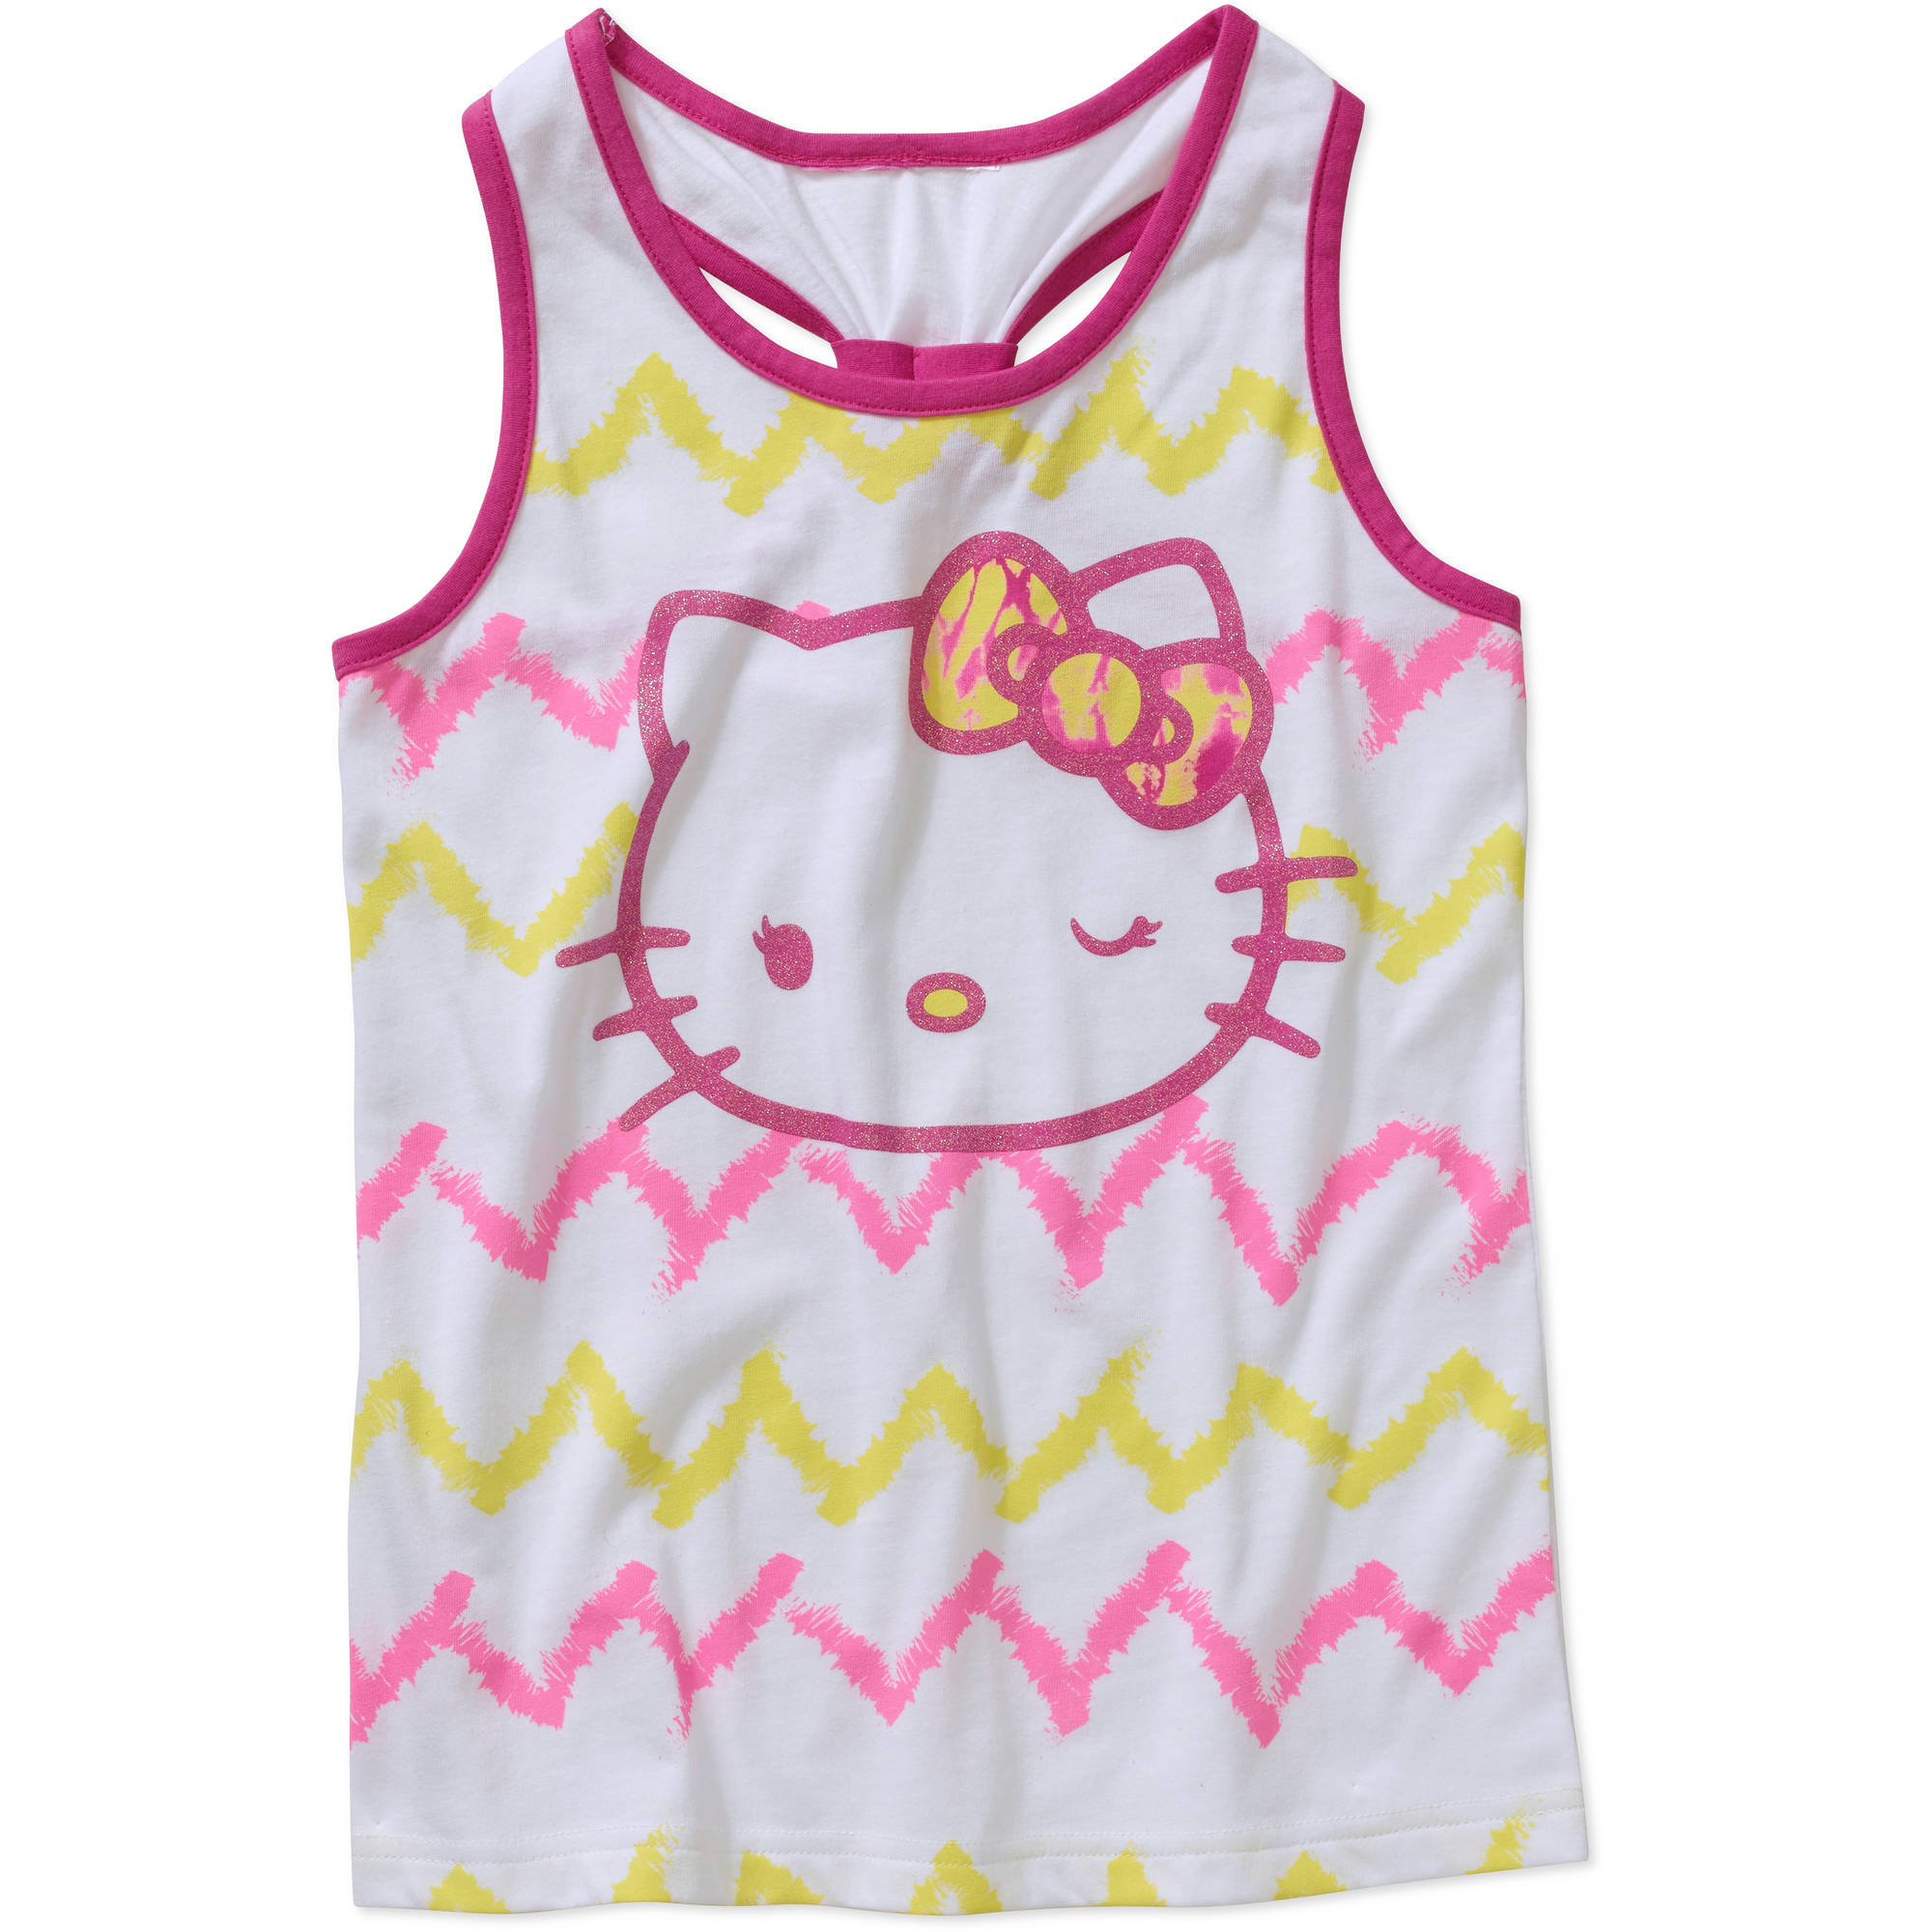 Hello Kitty Girls' Banded Racerback Graphic Tank